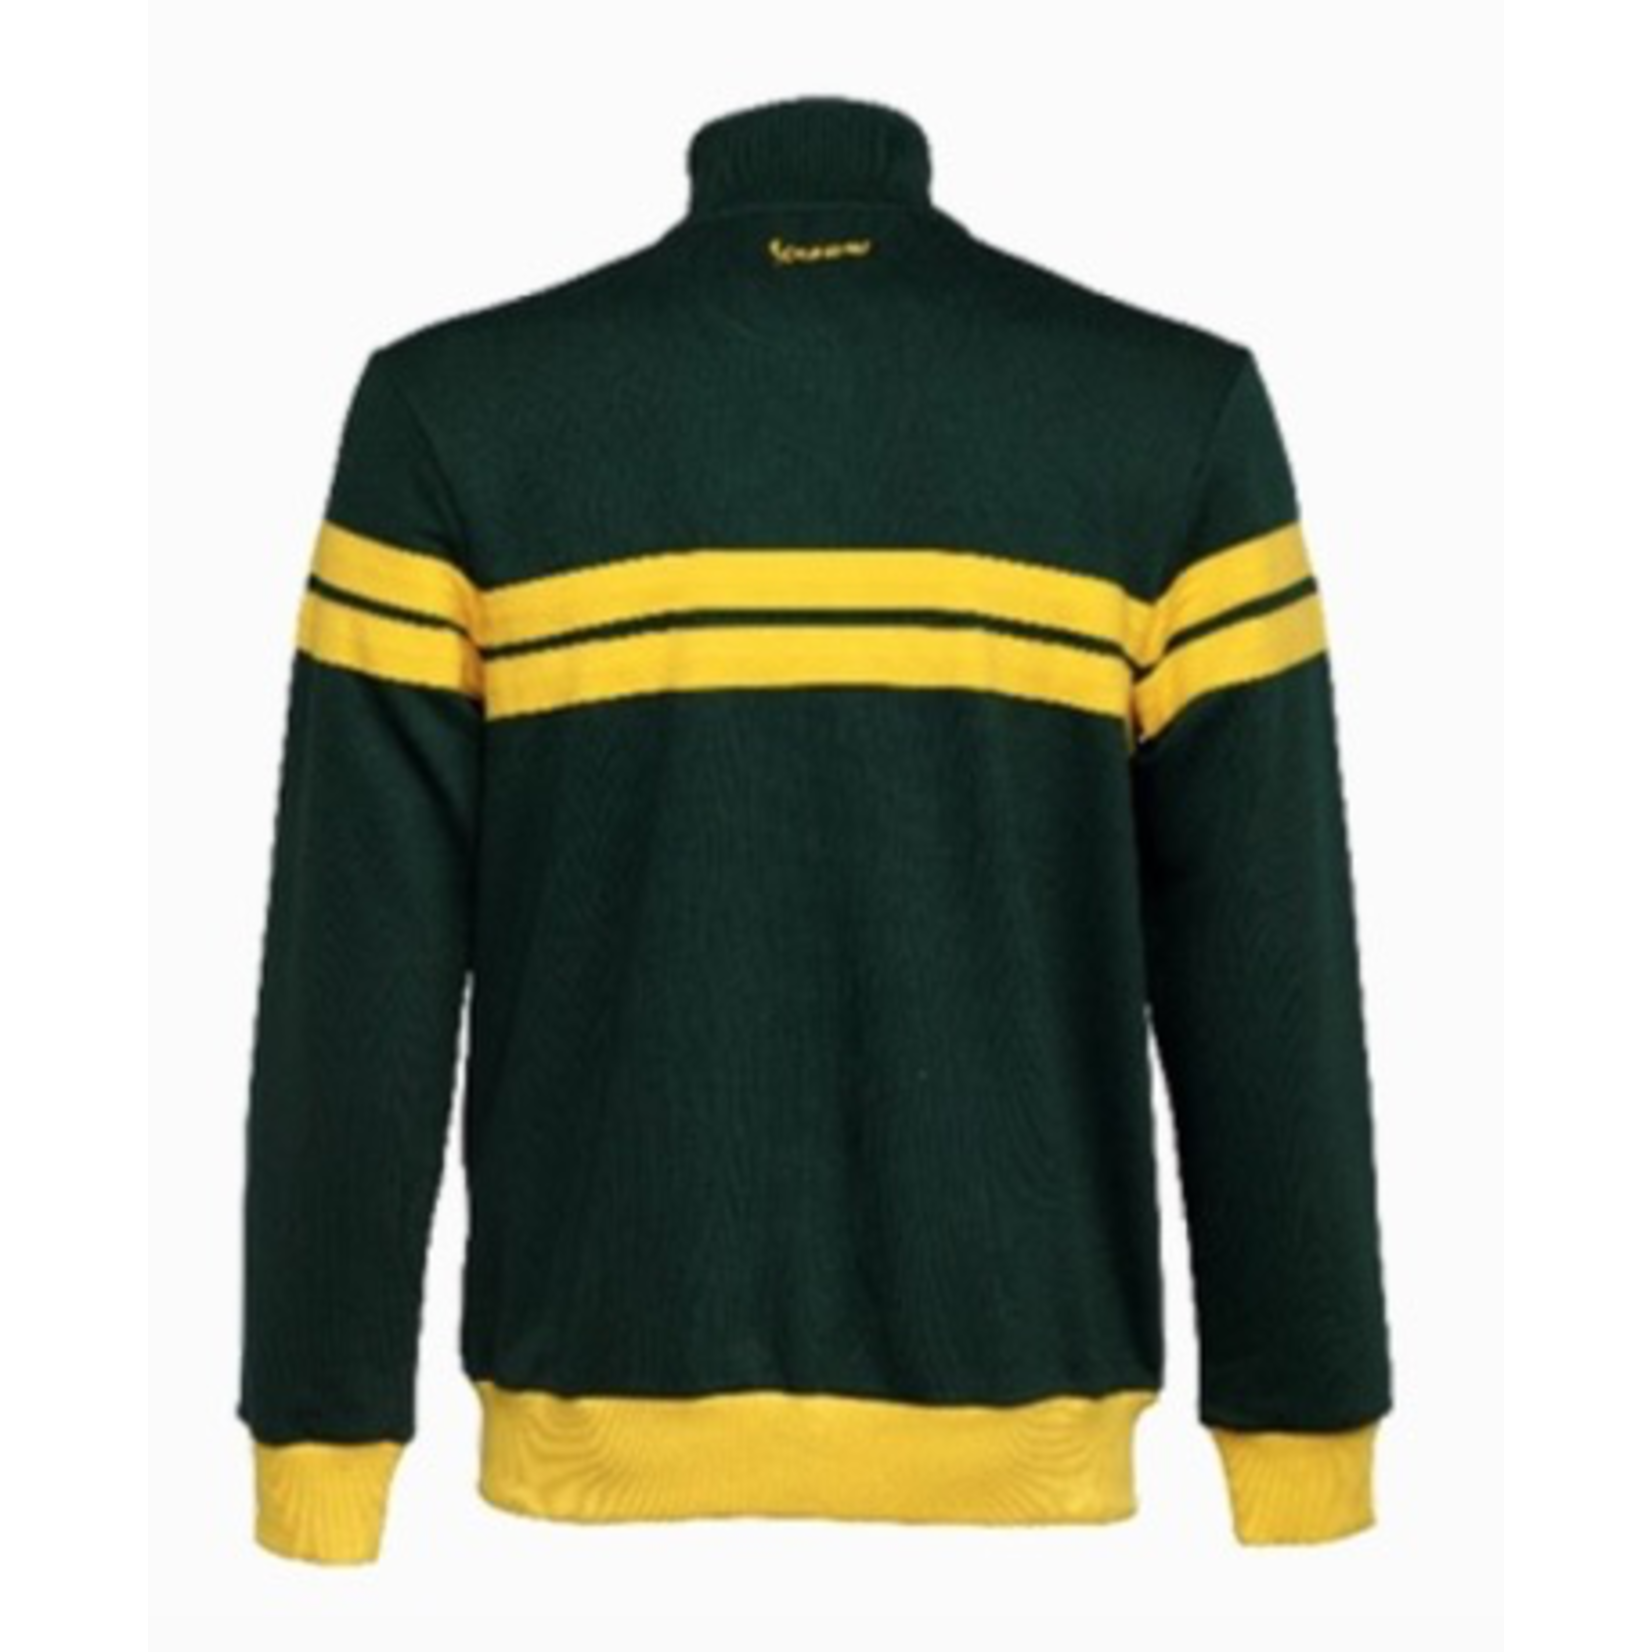 Lifestyle Felpa, Vespa Racing 60's Track Jacket (White or Green)